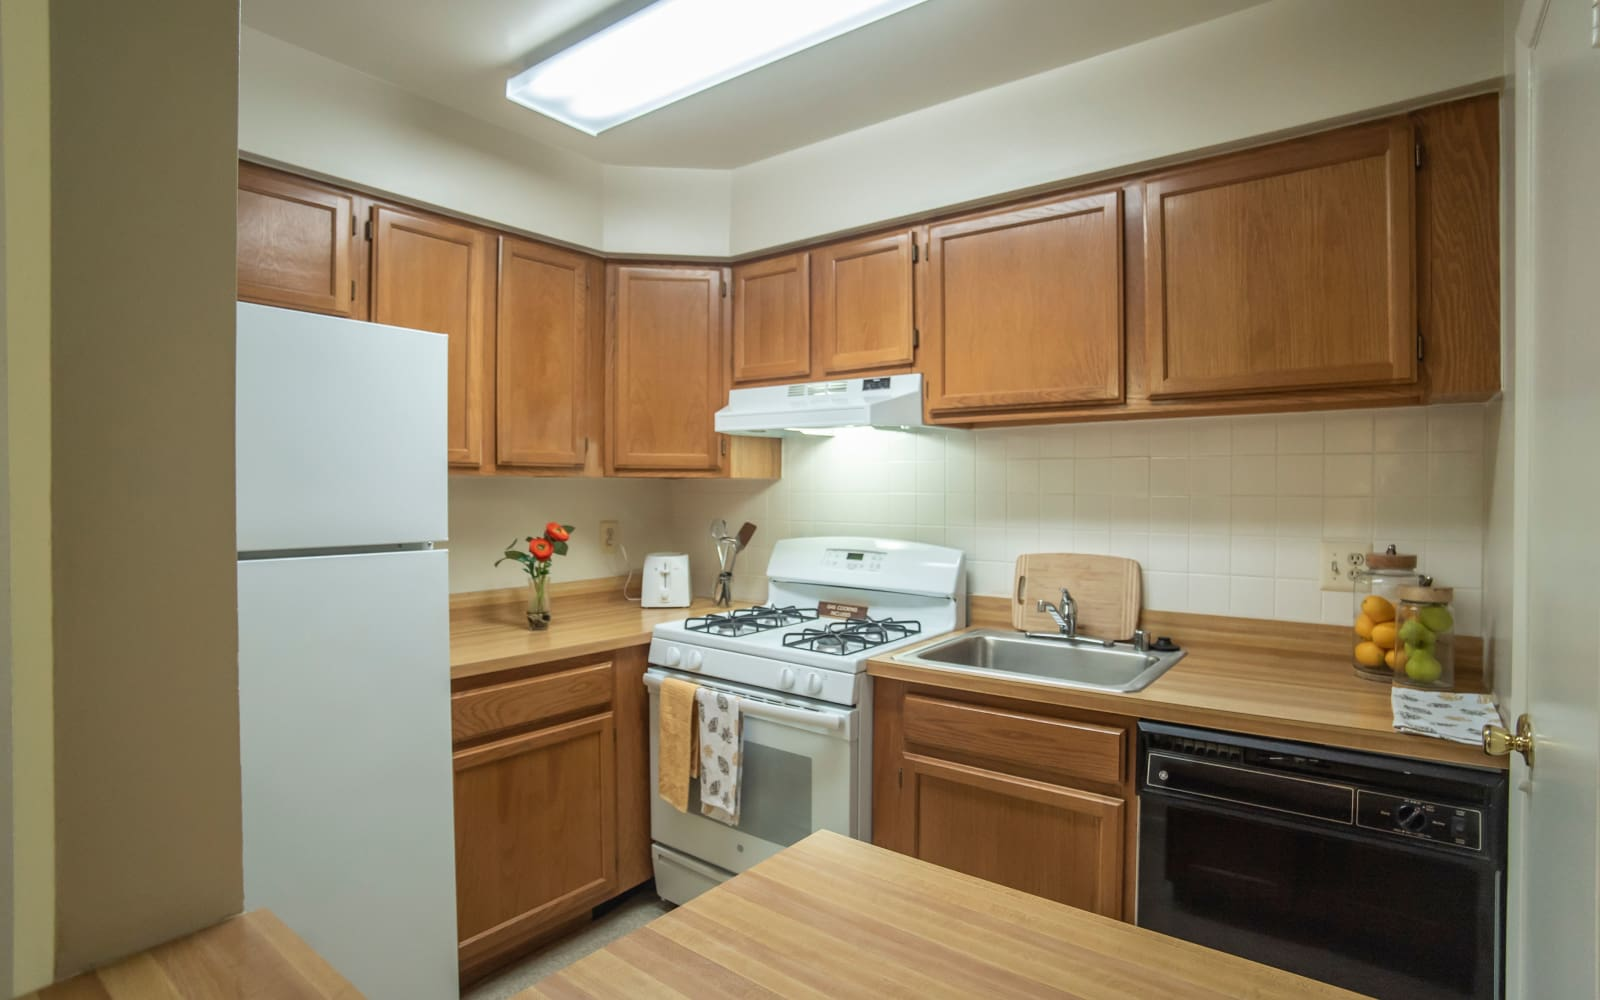 Apartment kitchen with plenty of storage space at Hunt Club Apartments in Cockeysville, Maryland